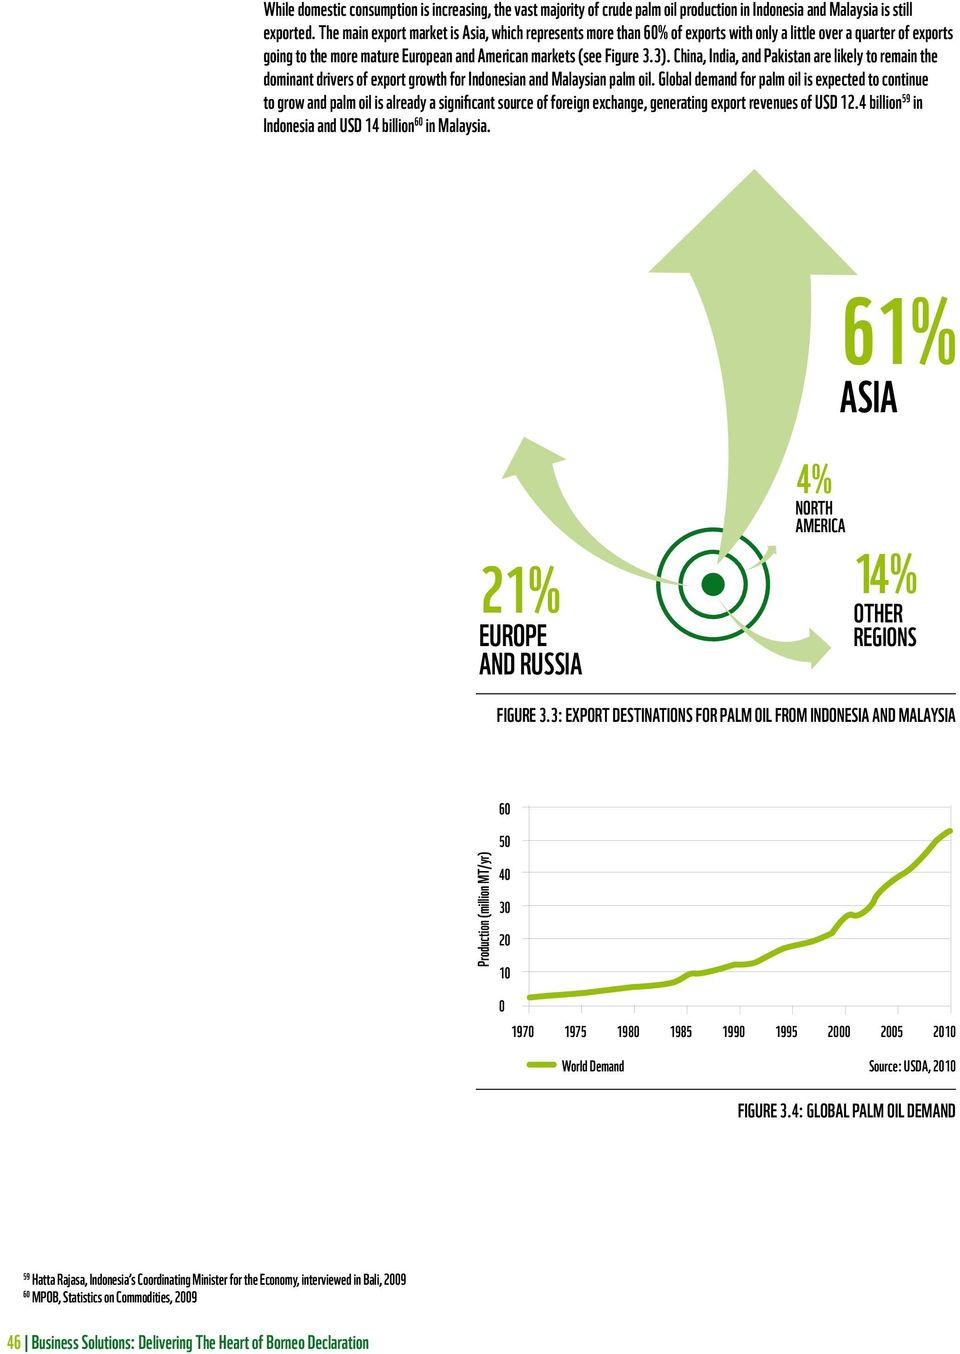 China, India, and Pakistan are likely to remain the dominant drivers of export growth for Indonesian and Malaysian palm oil.